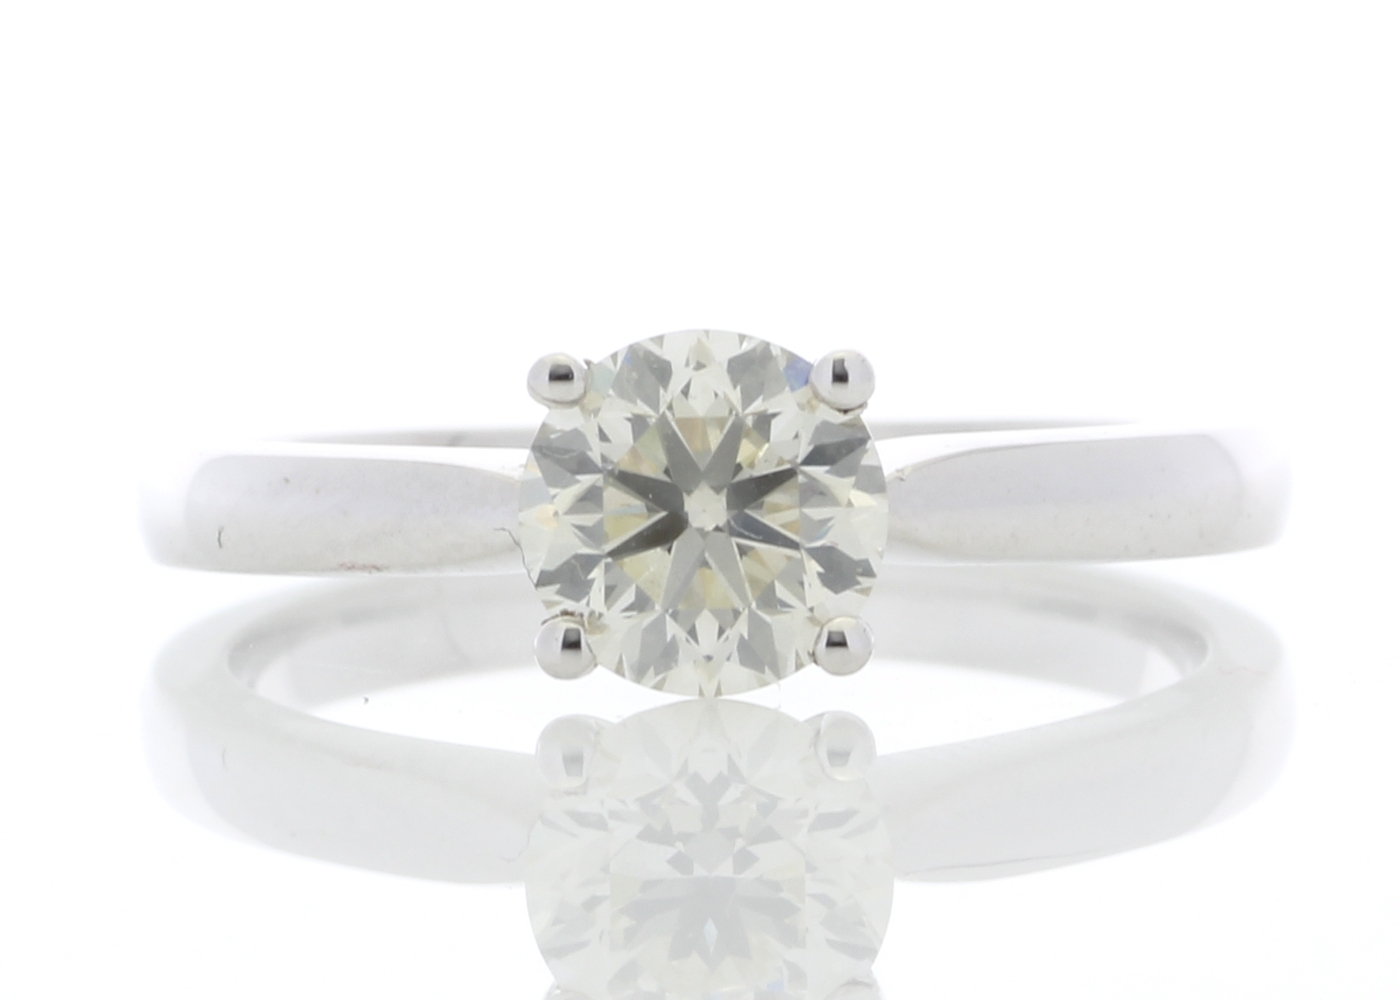 Lot 8 - 18ct White Gold Solitaire Diamond Ring 0.90 Carats